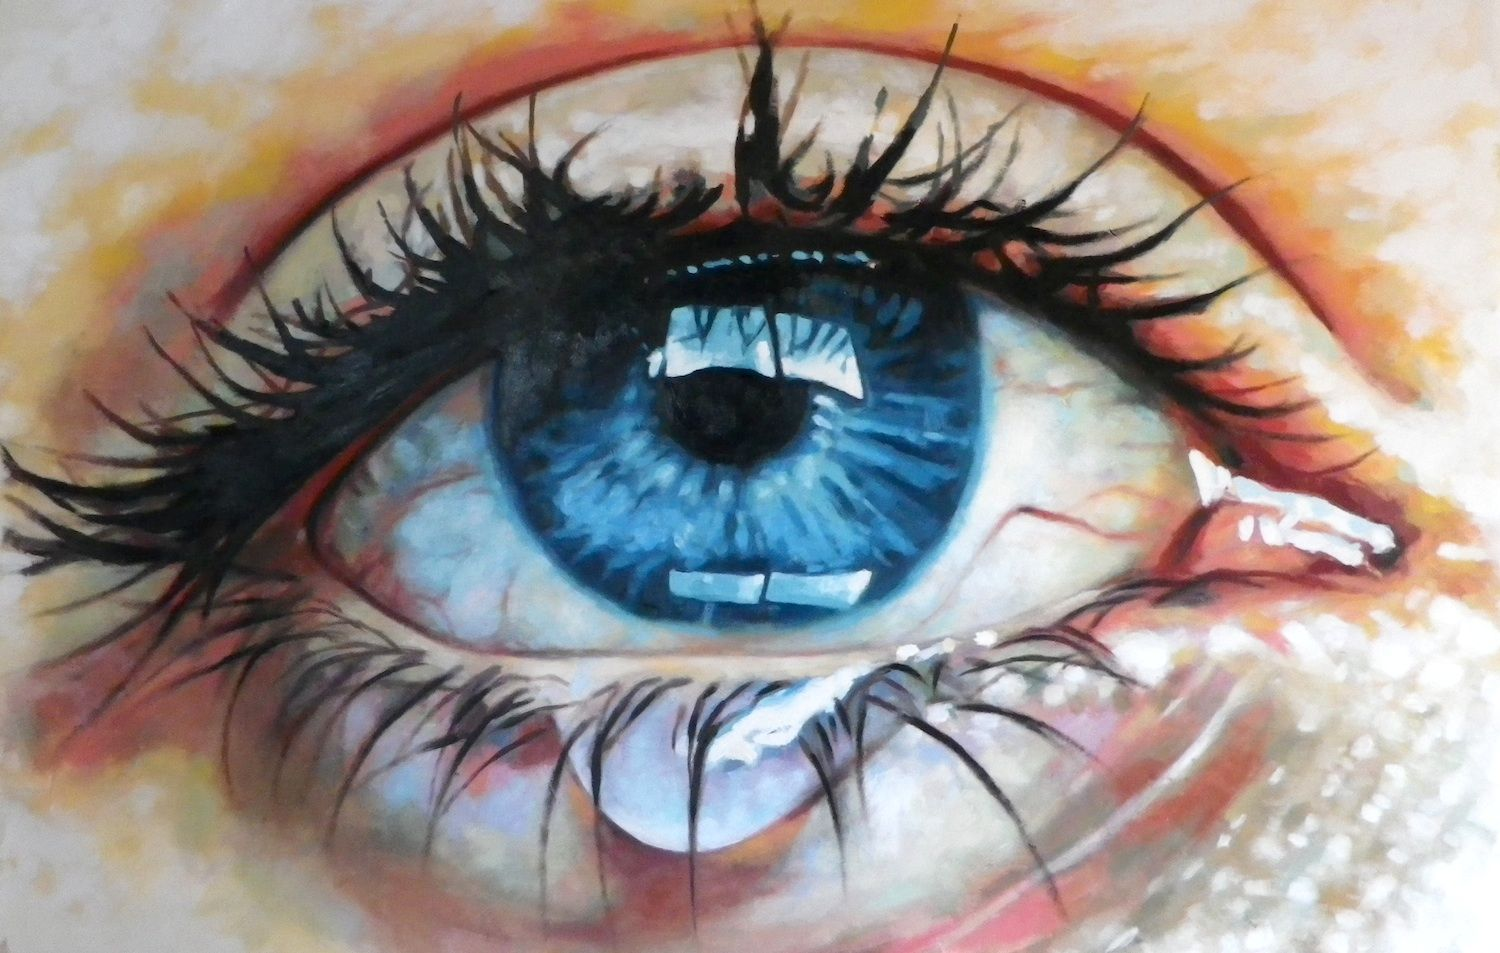 Close up eye tear Thomas Saliot references/tutorials